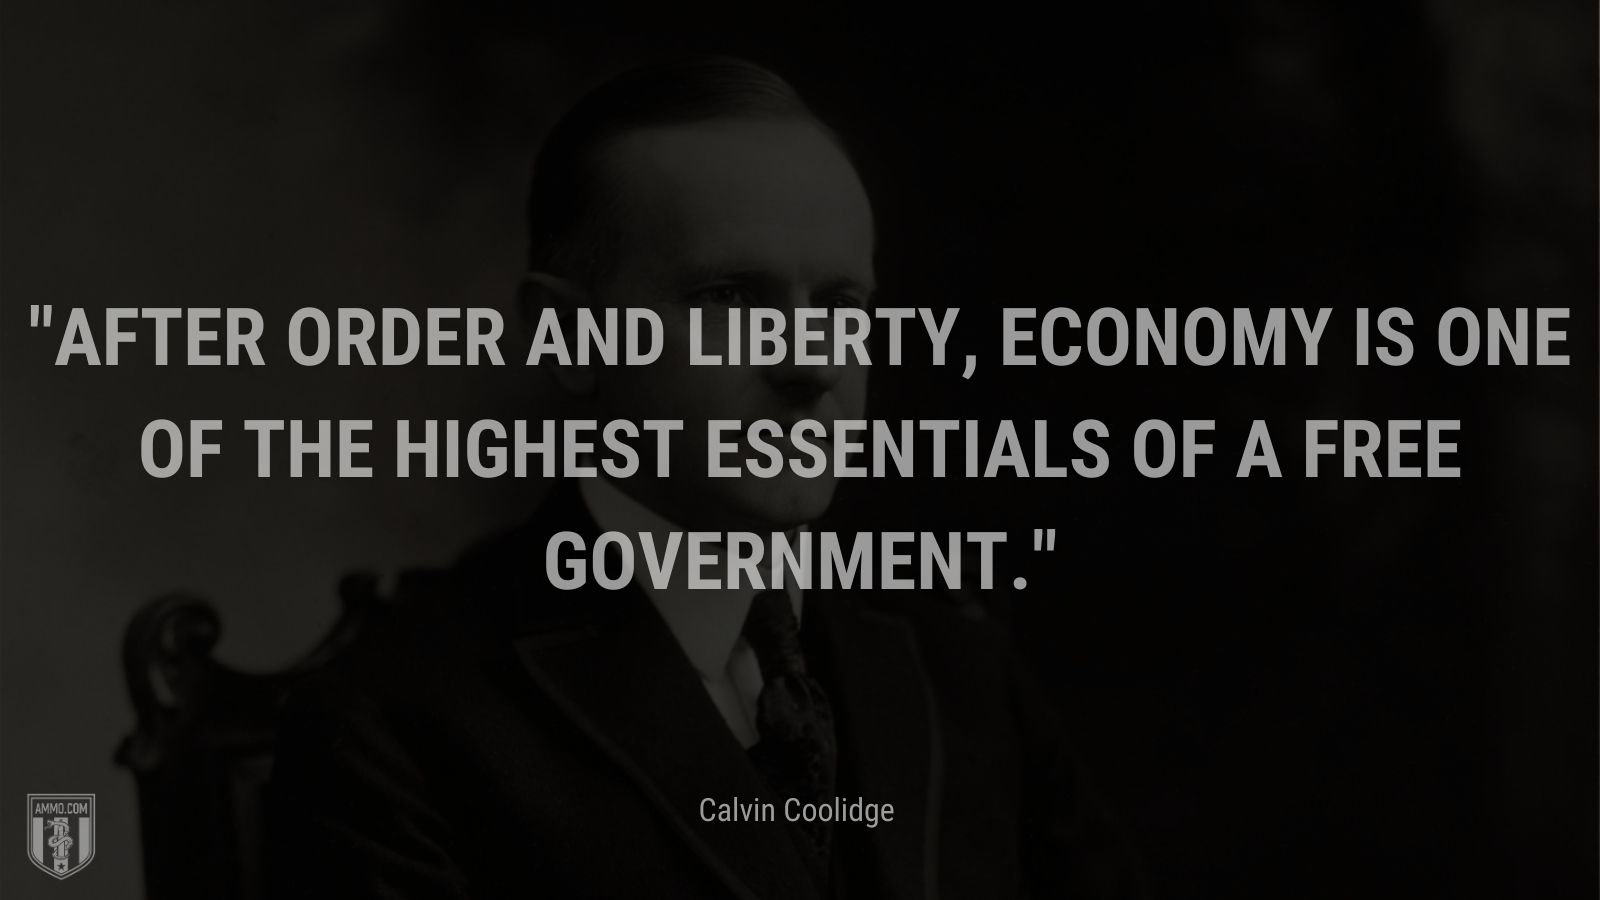 """""""After order and liberty, economy is one of the highest essentials of a free government."""" - Calvin Coolidge"""